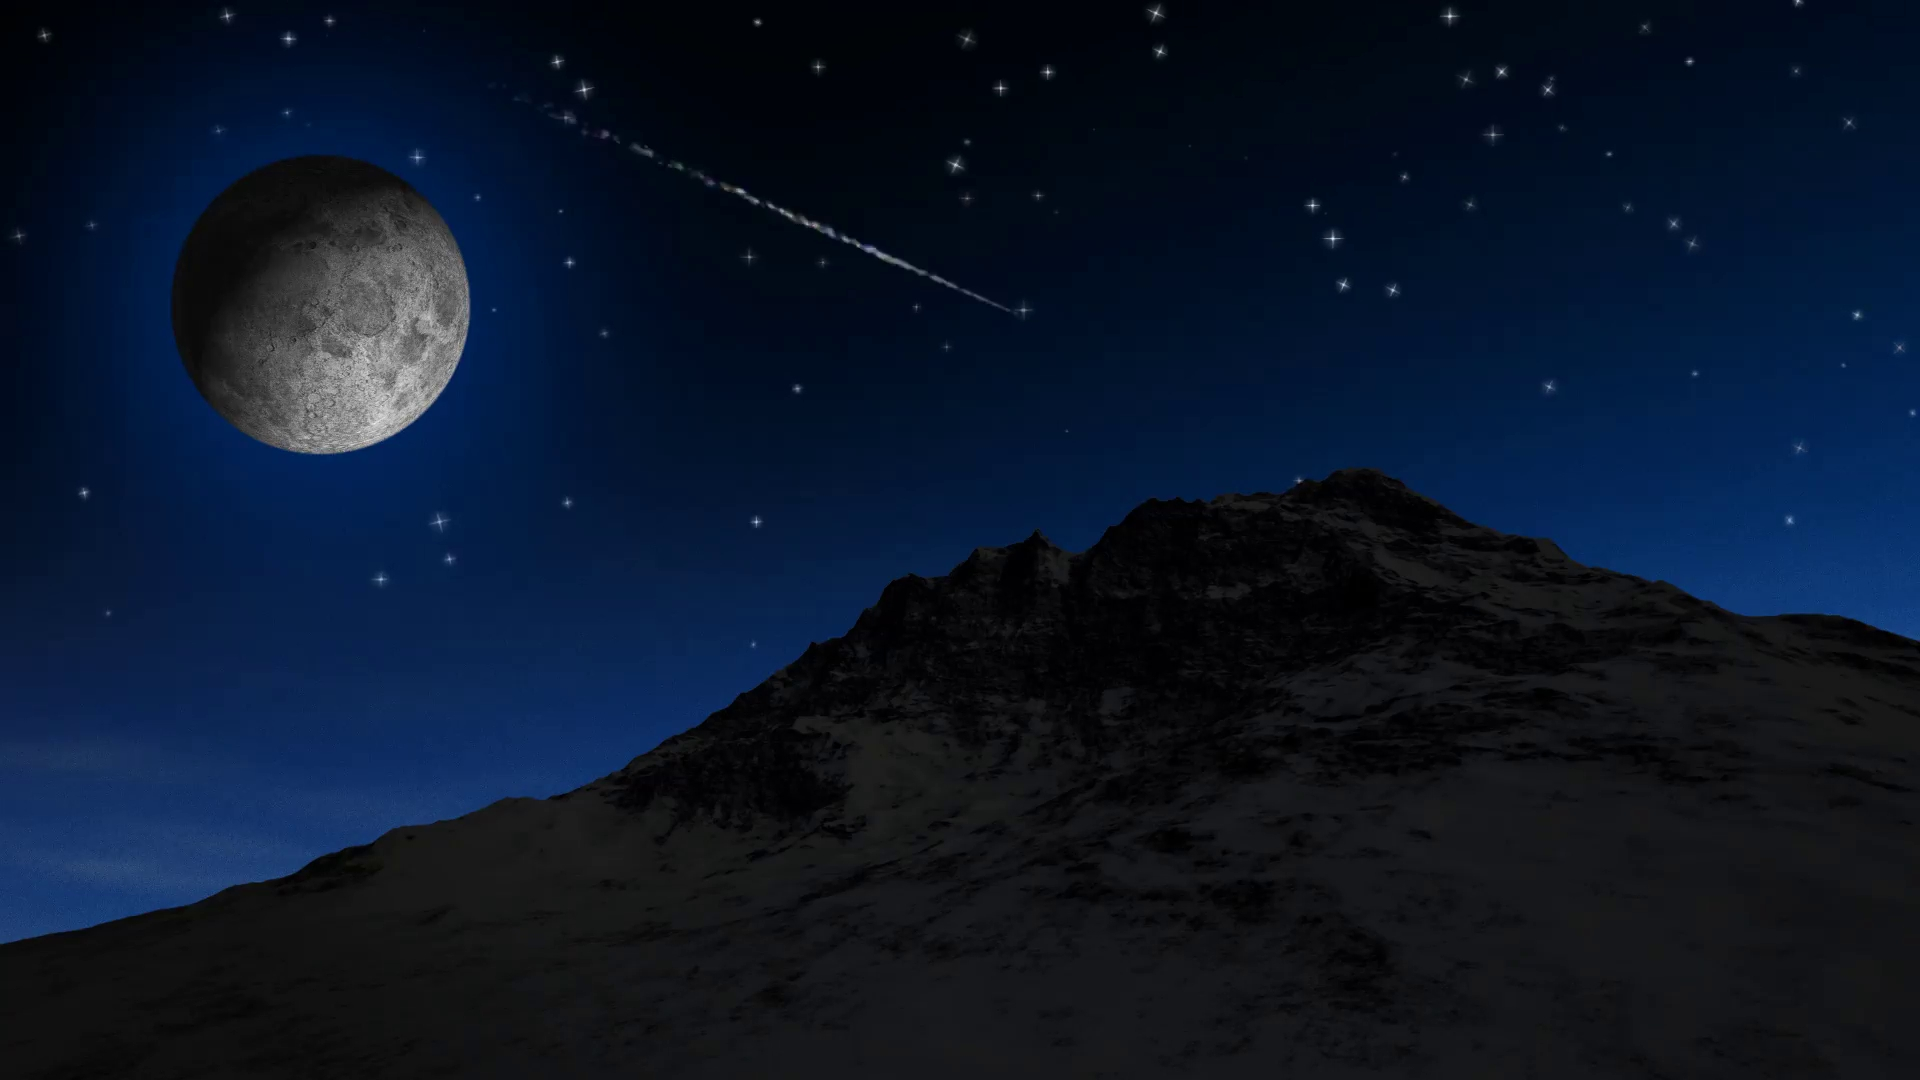 twinkling stars and moon motion background - videoblocks